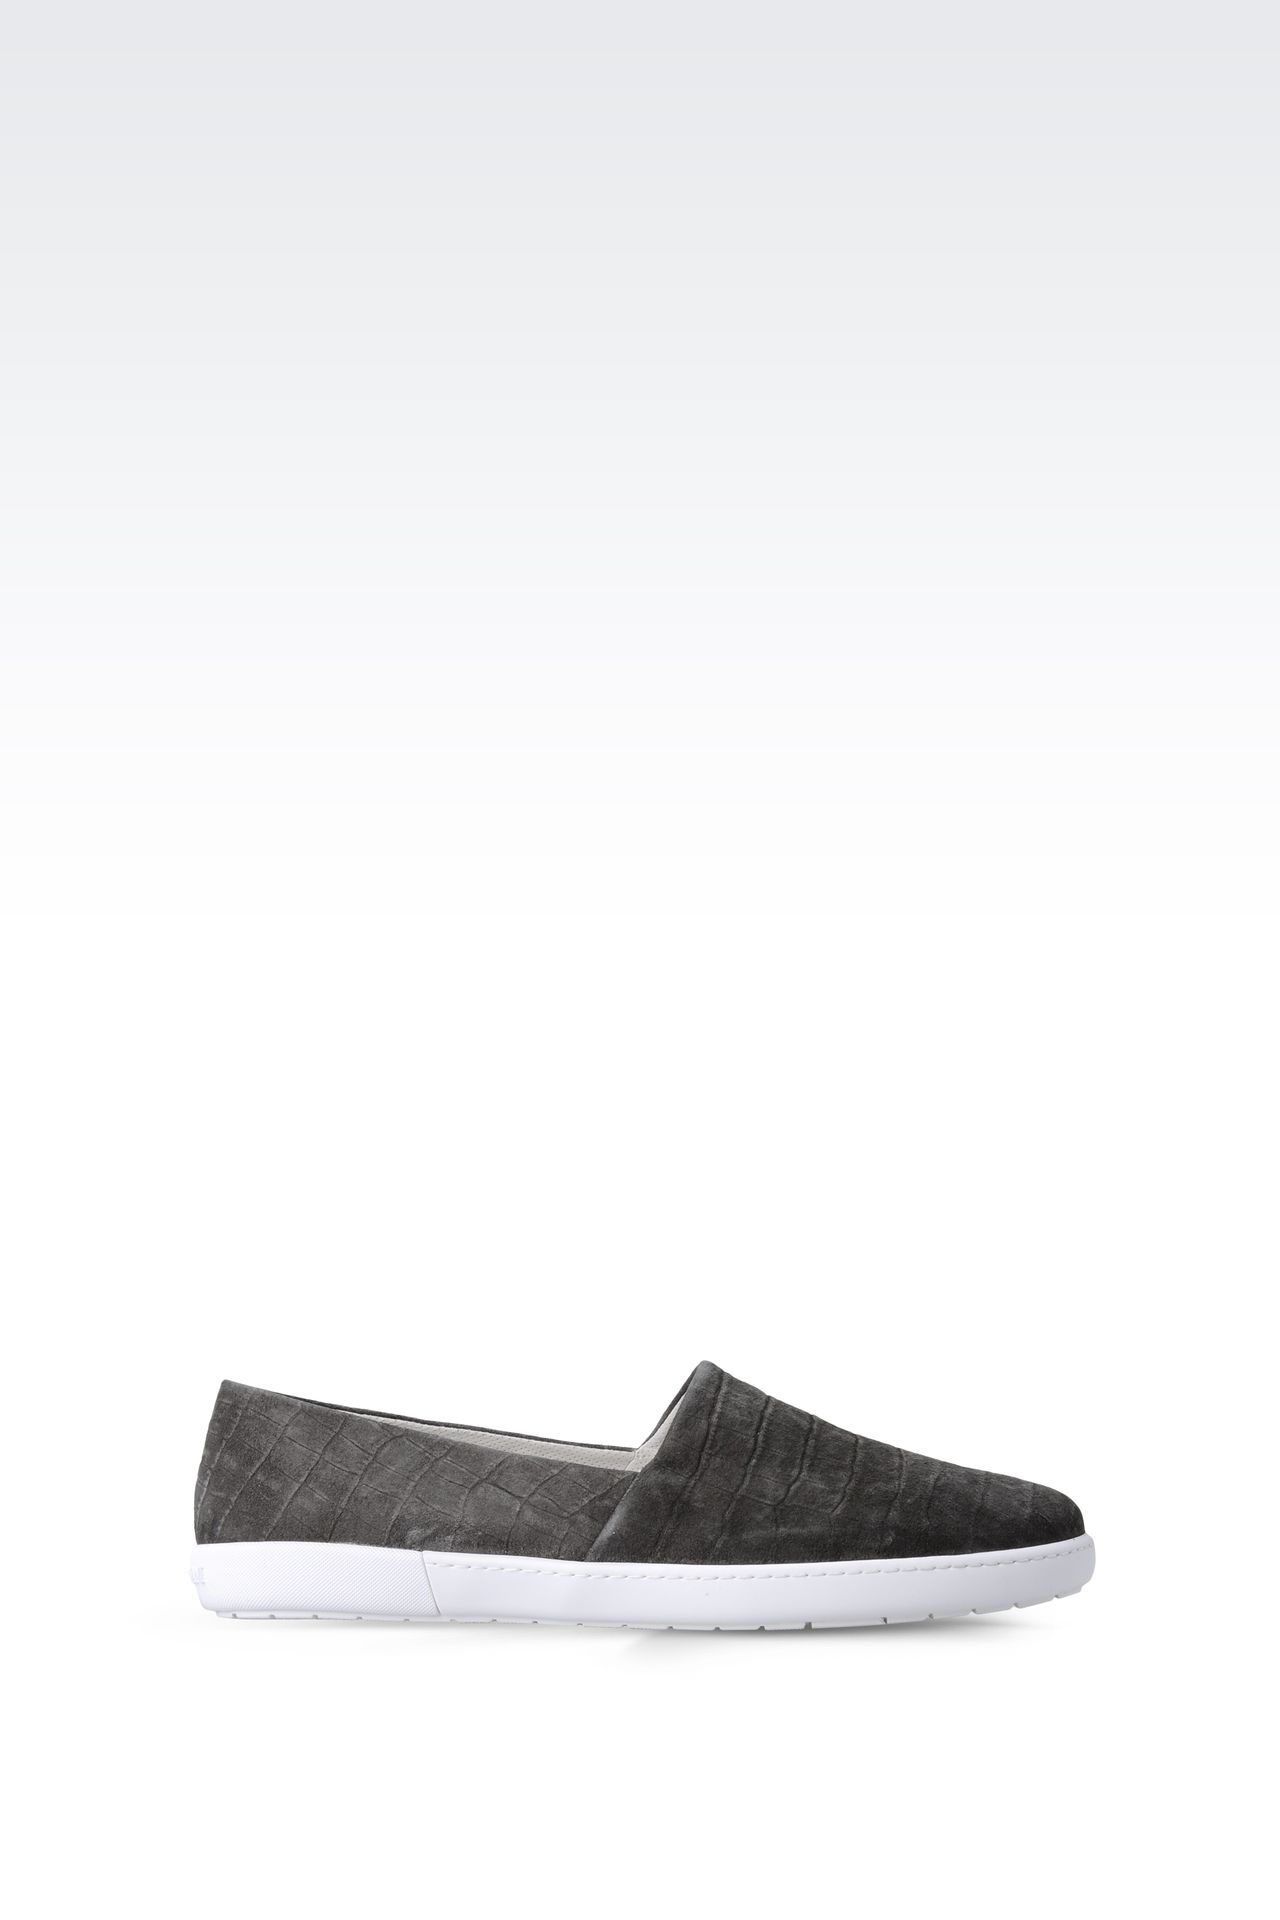 SLIP-ON IN CROC PRINT SUEDE : Sneakers Men by Armani - 0